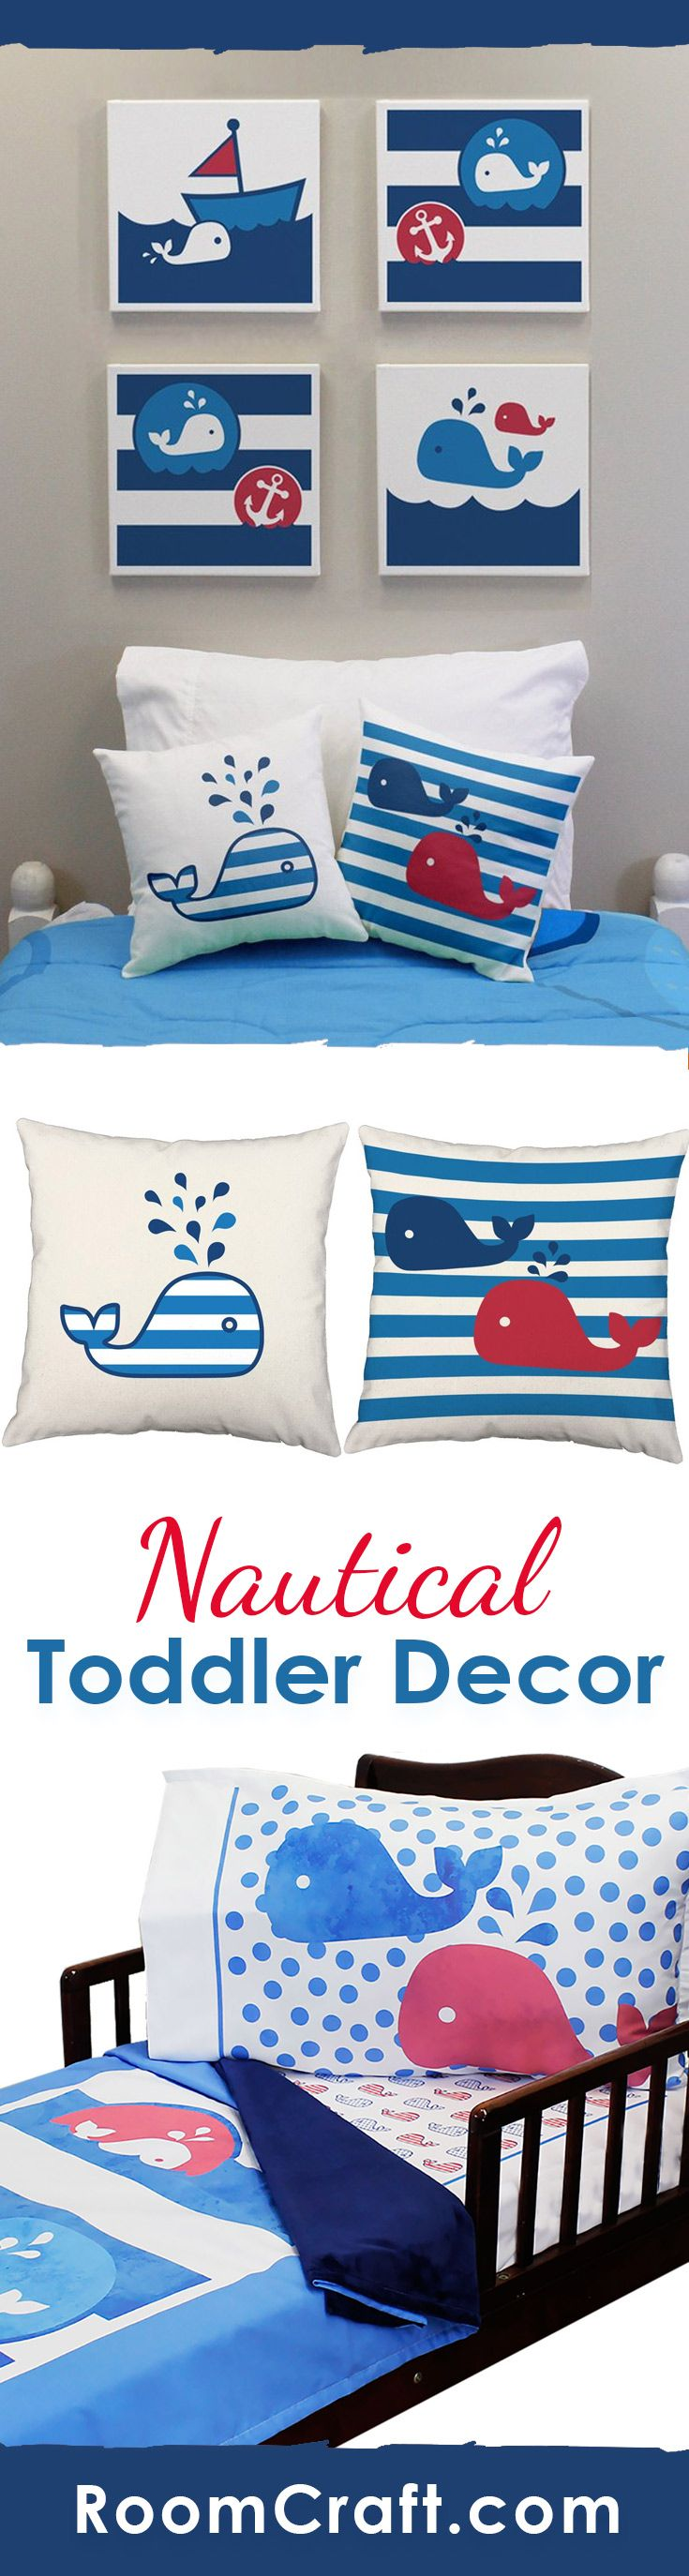 Whale, whale, whale... What do we have here? This adorable nautical design is available on throw pillows, canvas wall art, and toddler bedding. They are perfect for a complete room make over or choose one or two to add the finishing touches to your little one's whale themed bedroom. Make decorating fun and easy with these cute home decor products. #roomcraft